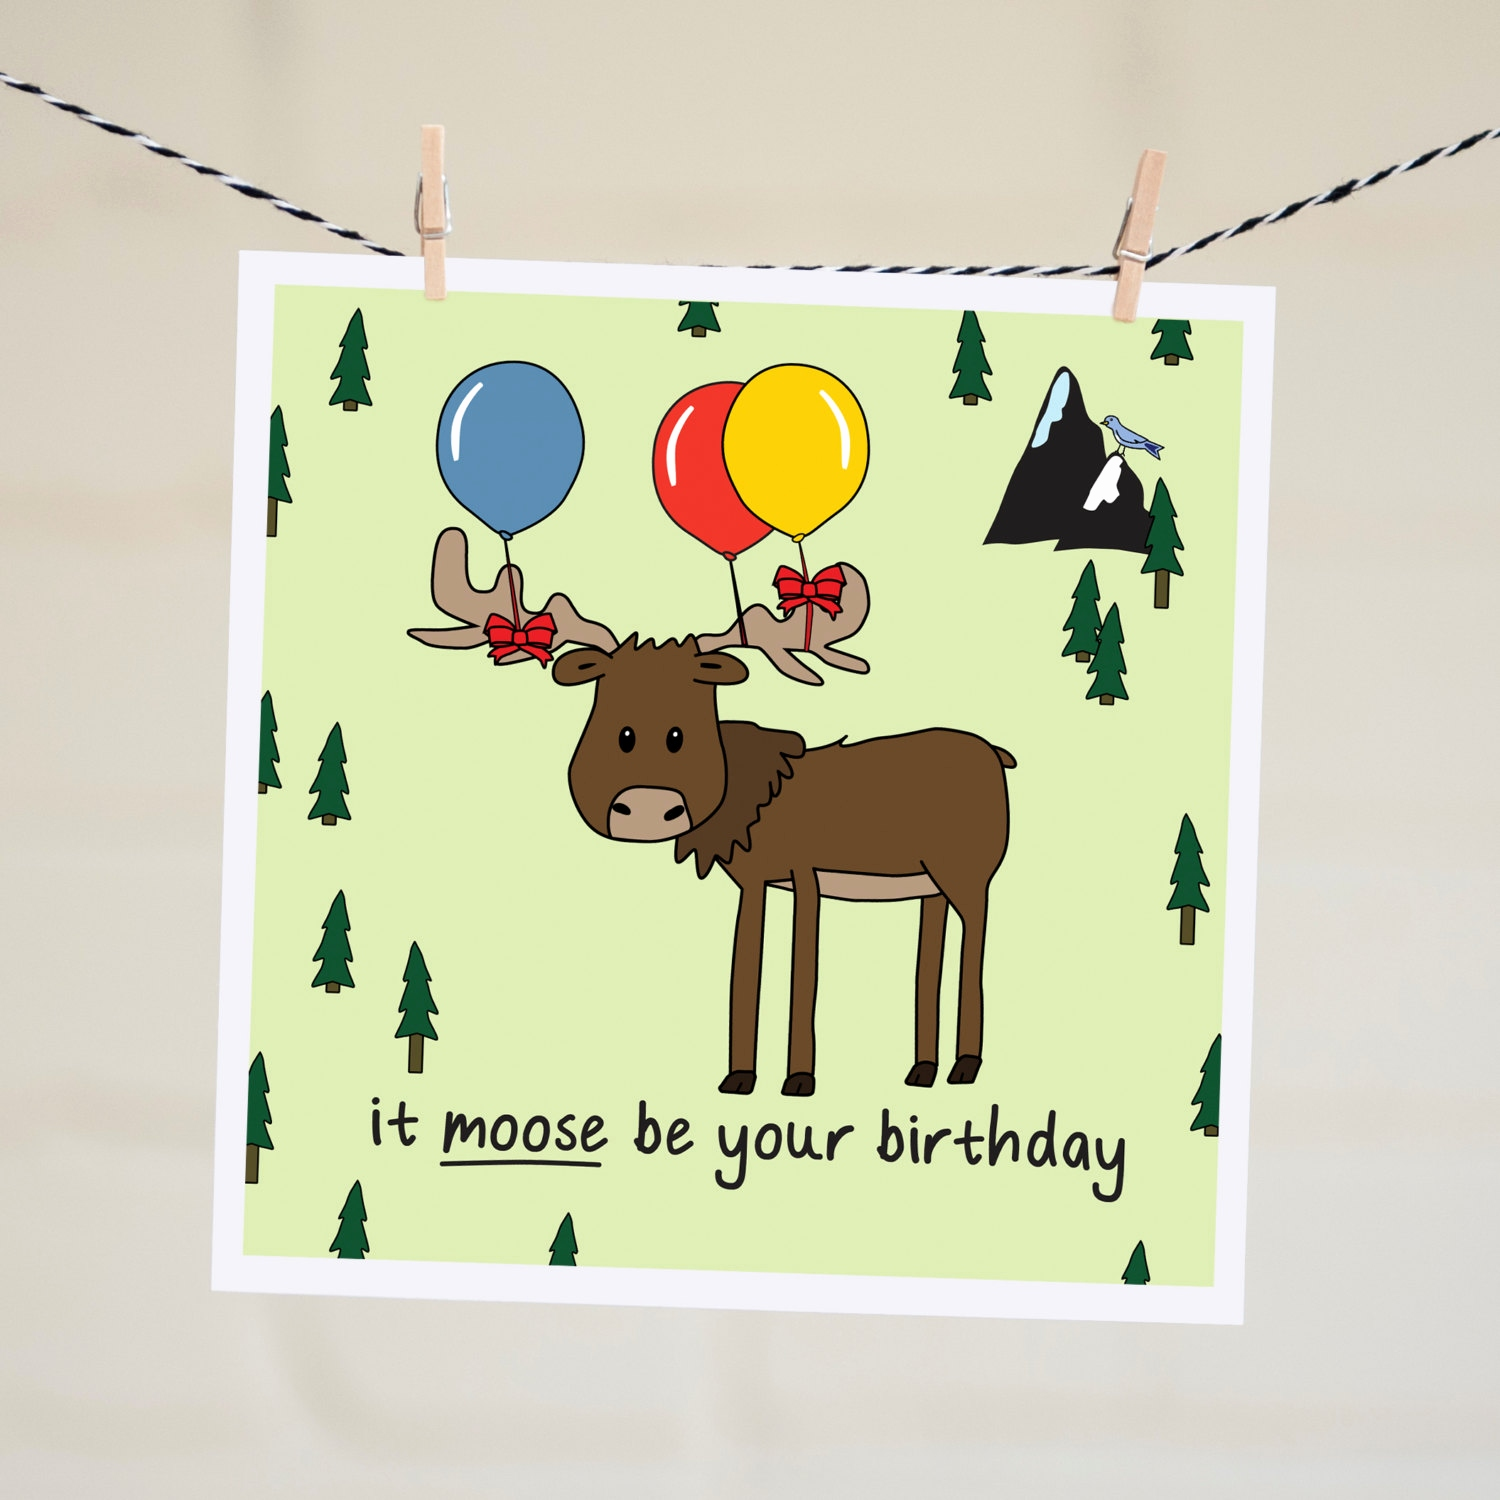 dog birthday card ideas ; dog-birthday-card-ideas-lovely-beautiful-funny-dog-birthday-cards-eccleshallfc-of-dog-birthday-card-ideas